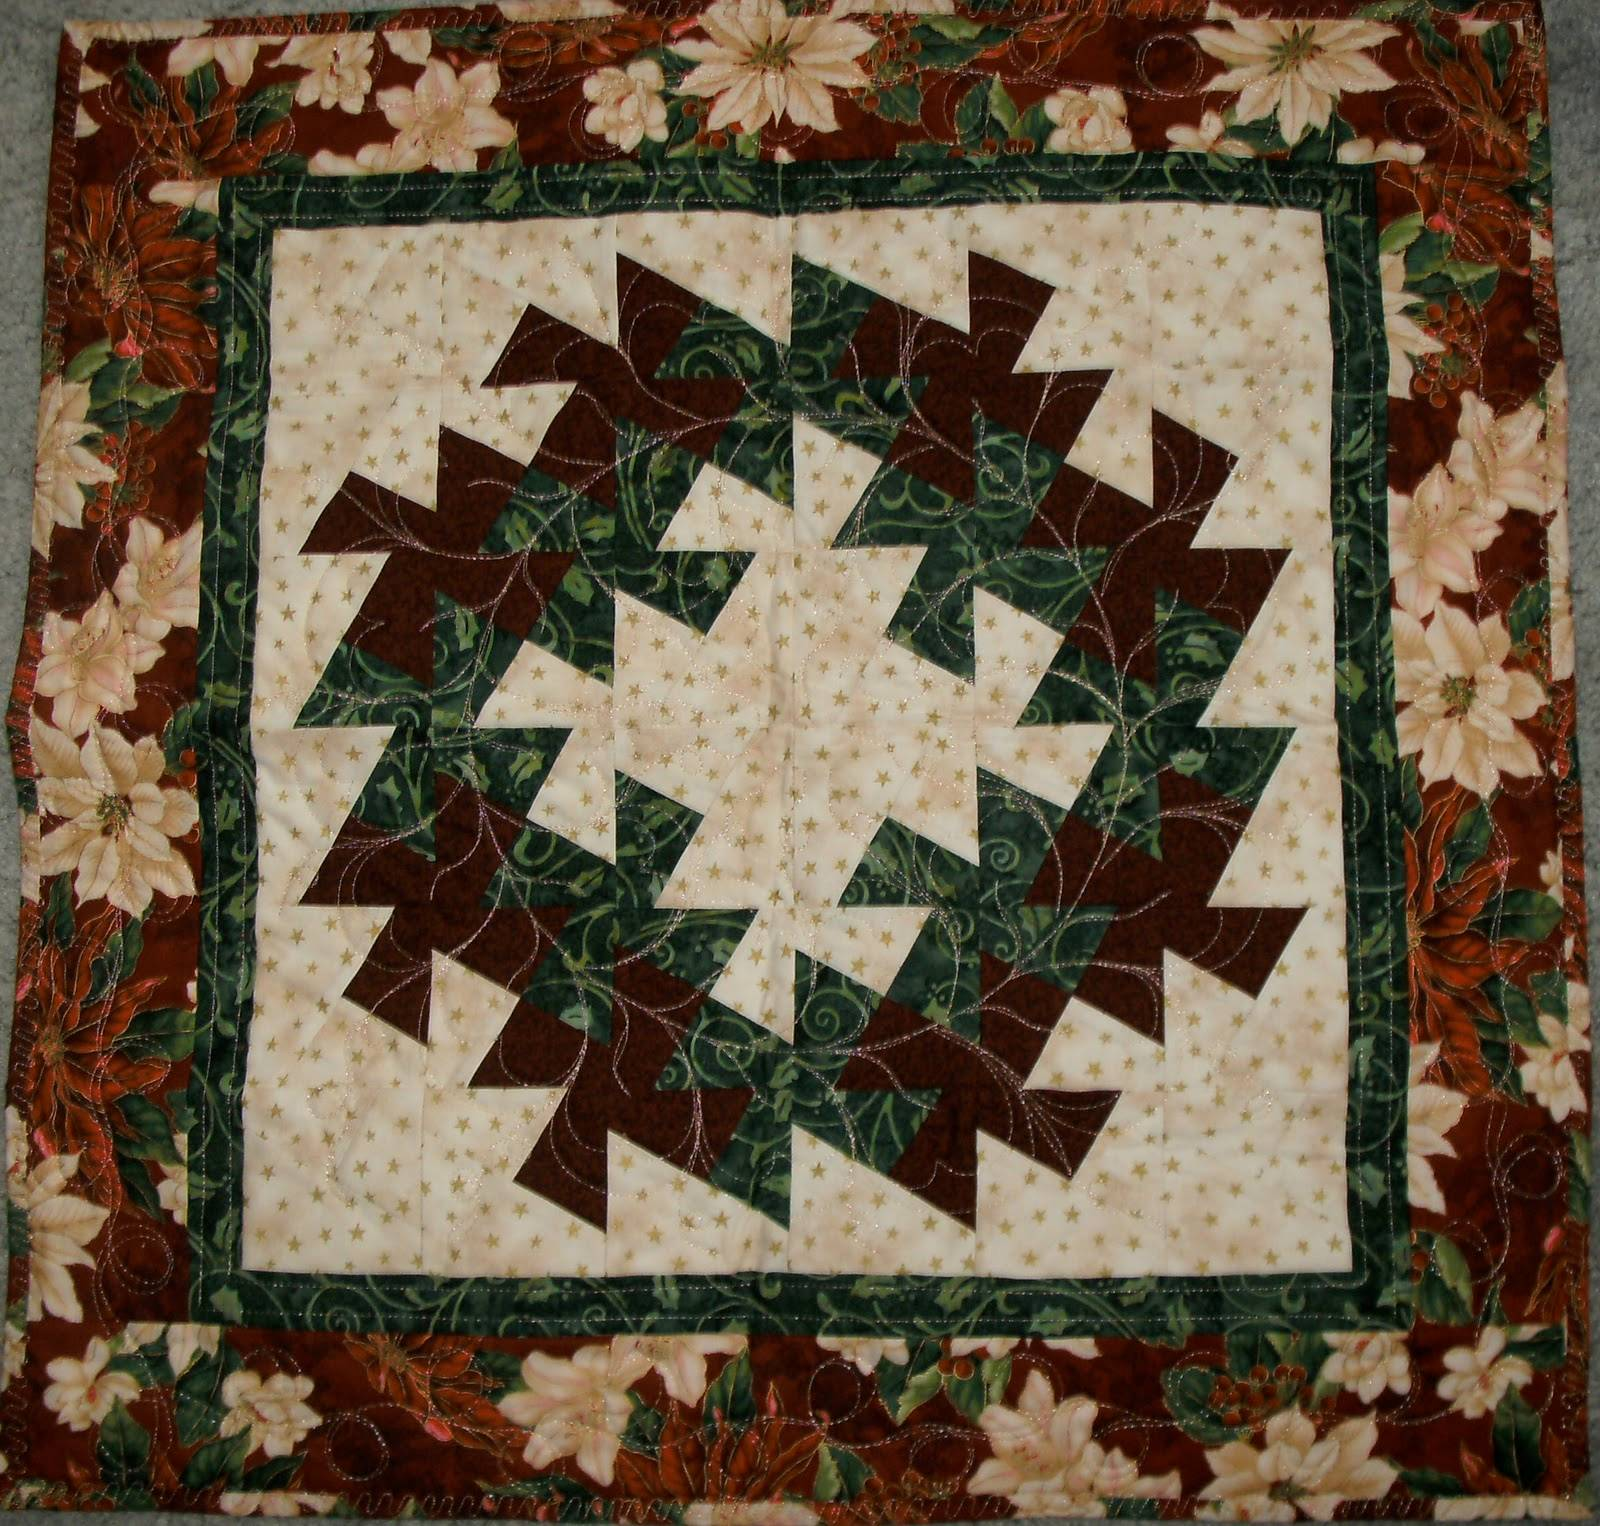 Twister Quilt Template Free